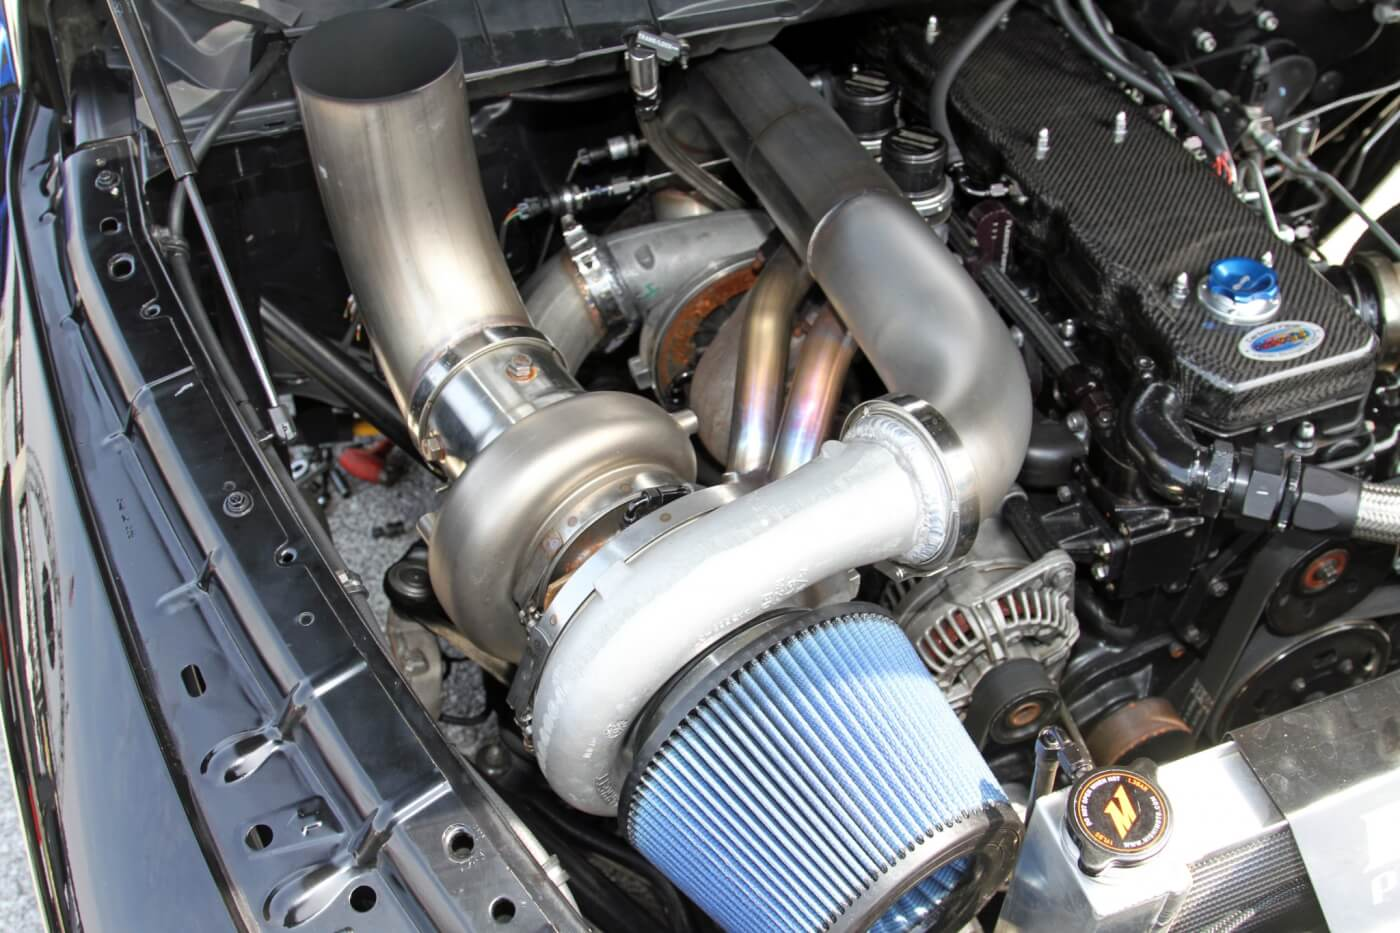 A large Garrett turbo is the primary, while a large Fleece Performance Engineering turbo is tucked under the Steed Speed manifold and custom stainless steel piping.